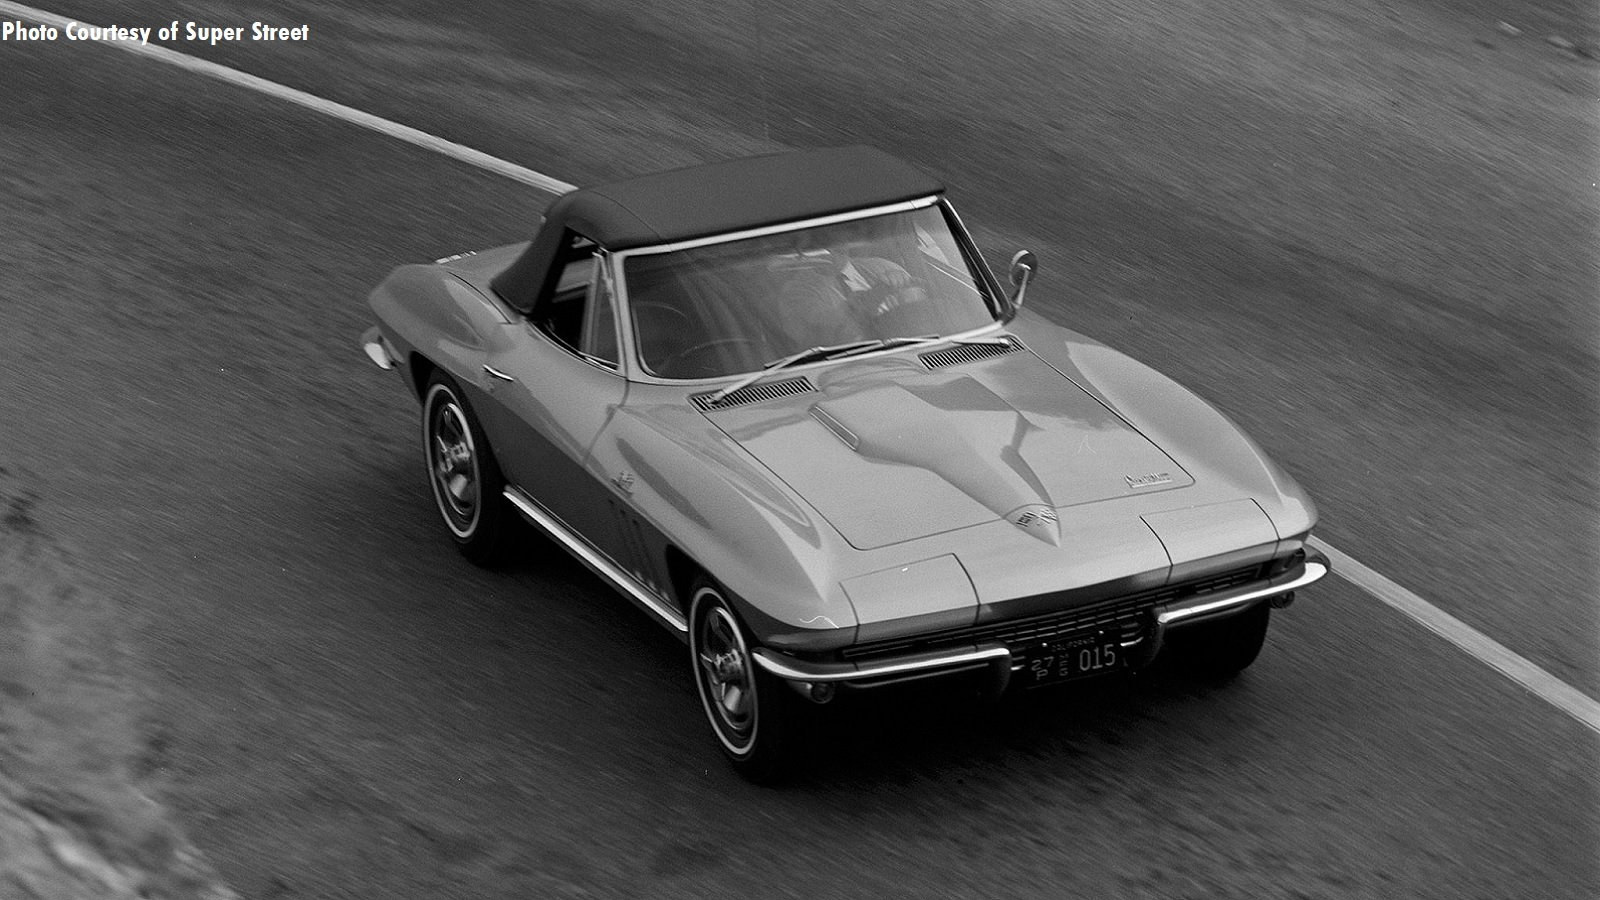 Retro Review: The 1966 427 Corvette Way Back When